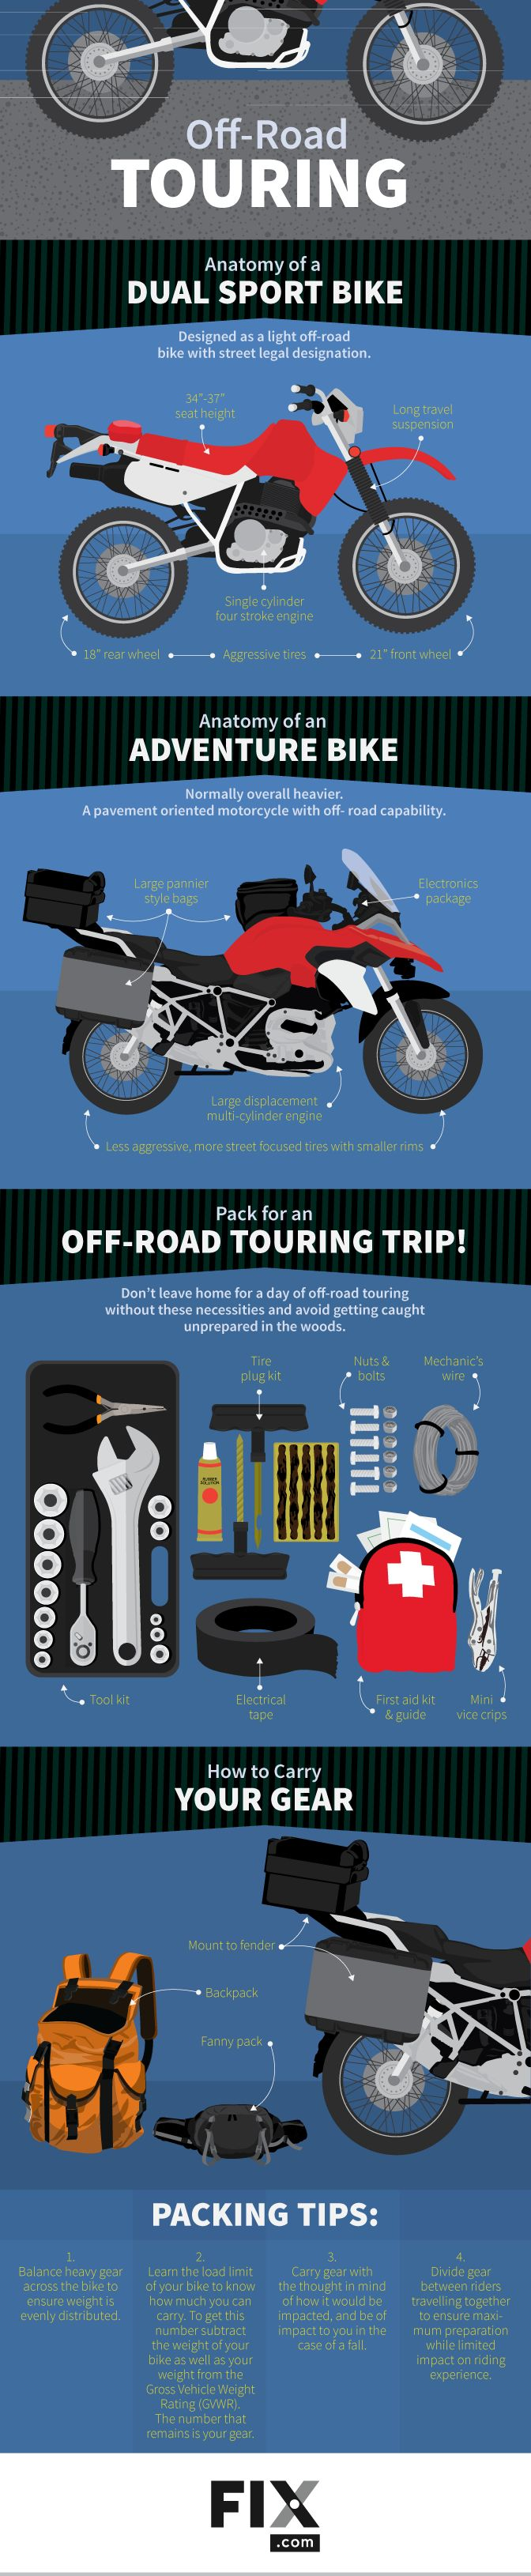 Planning on riding off-road? Before you take your motorcycle touring learn what you'll need to be ready for the trip.